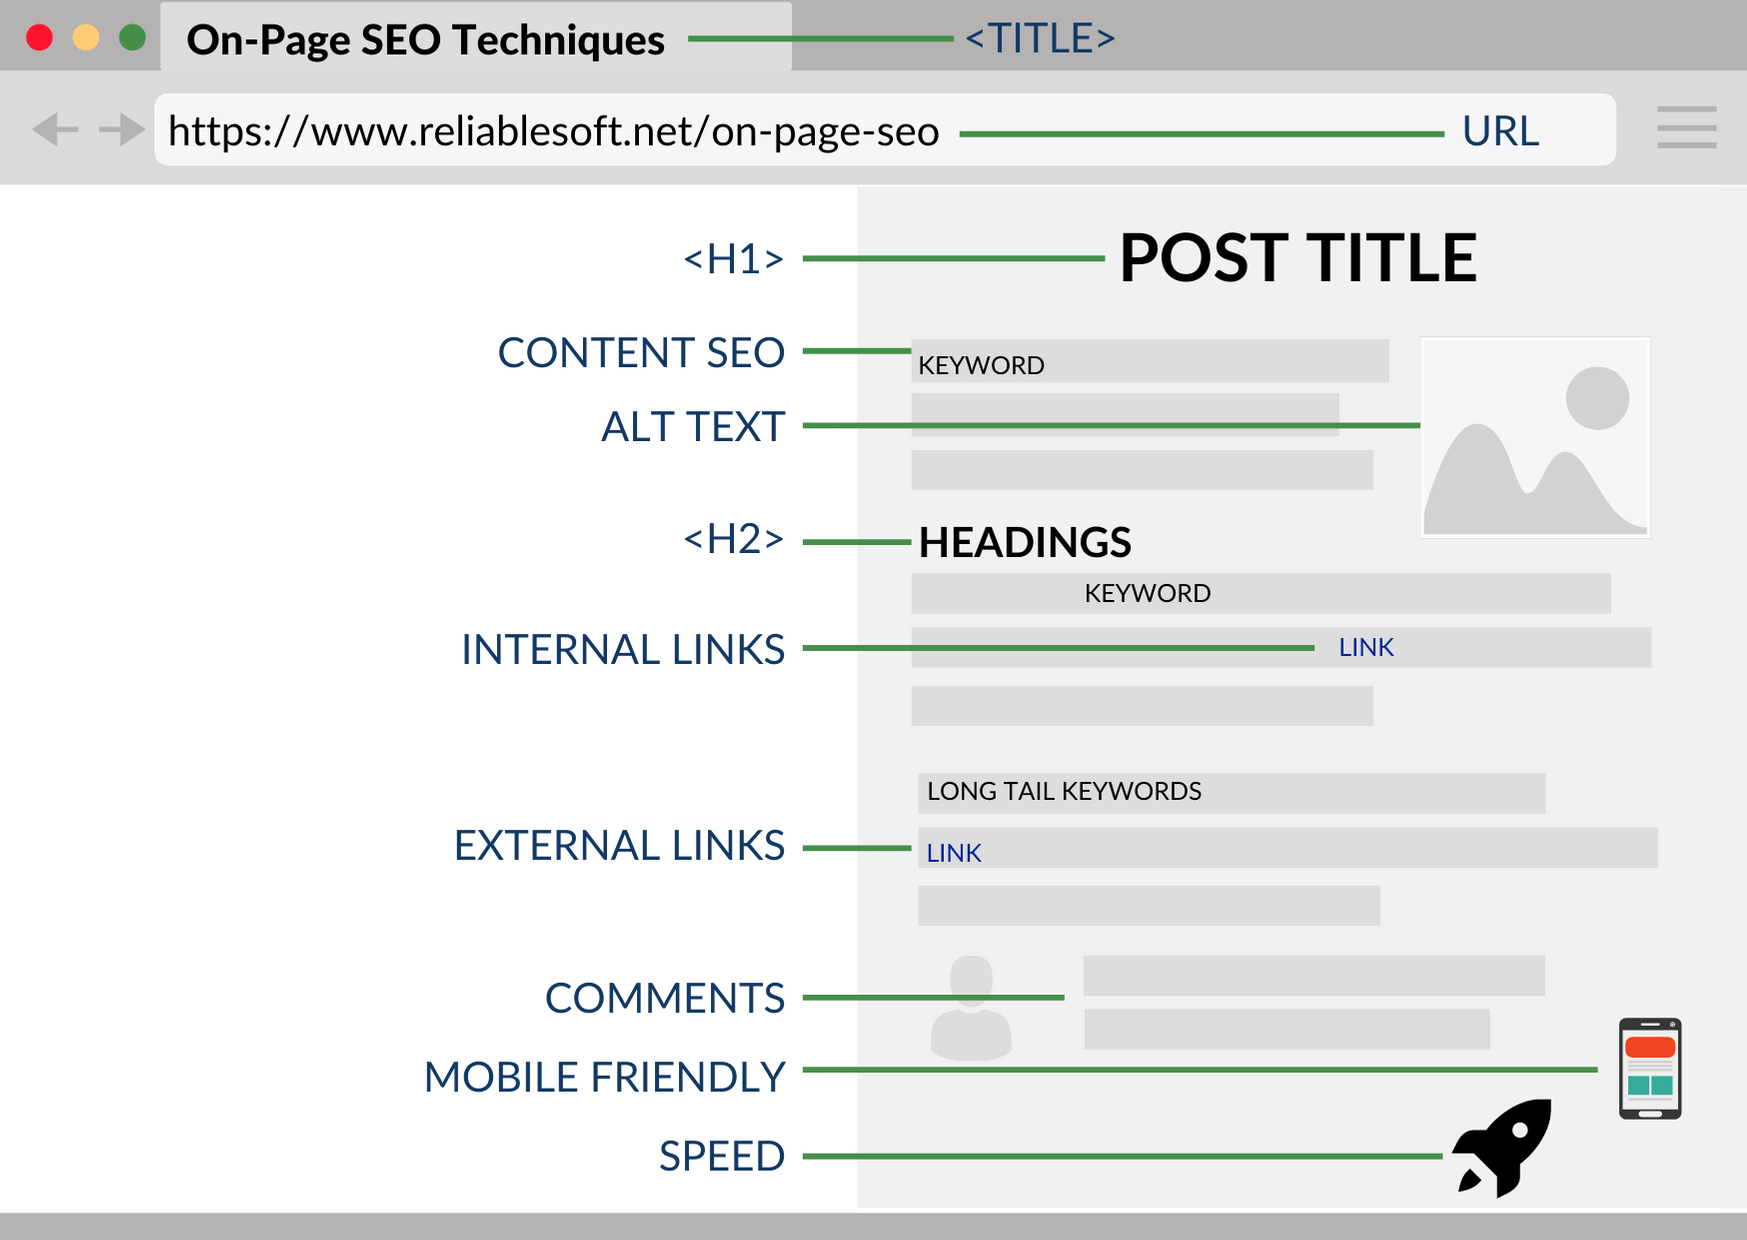 on page SEO article checklist to create and write perfect SEO articles for yourself or your organization.